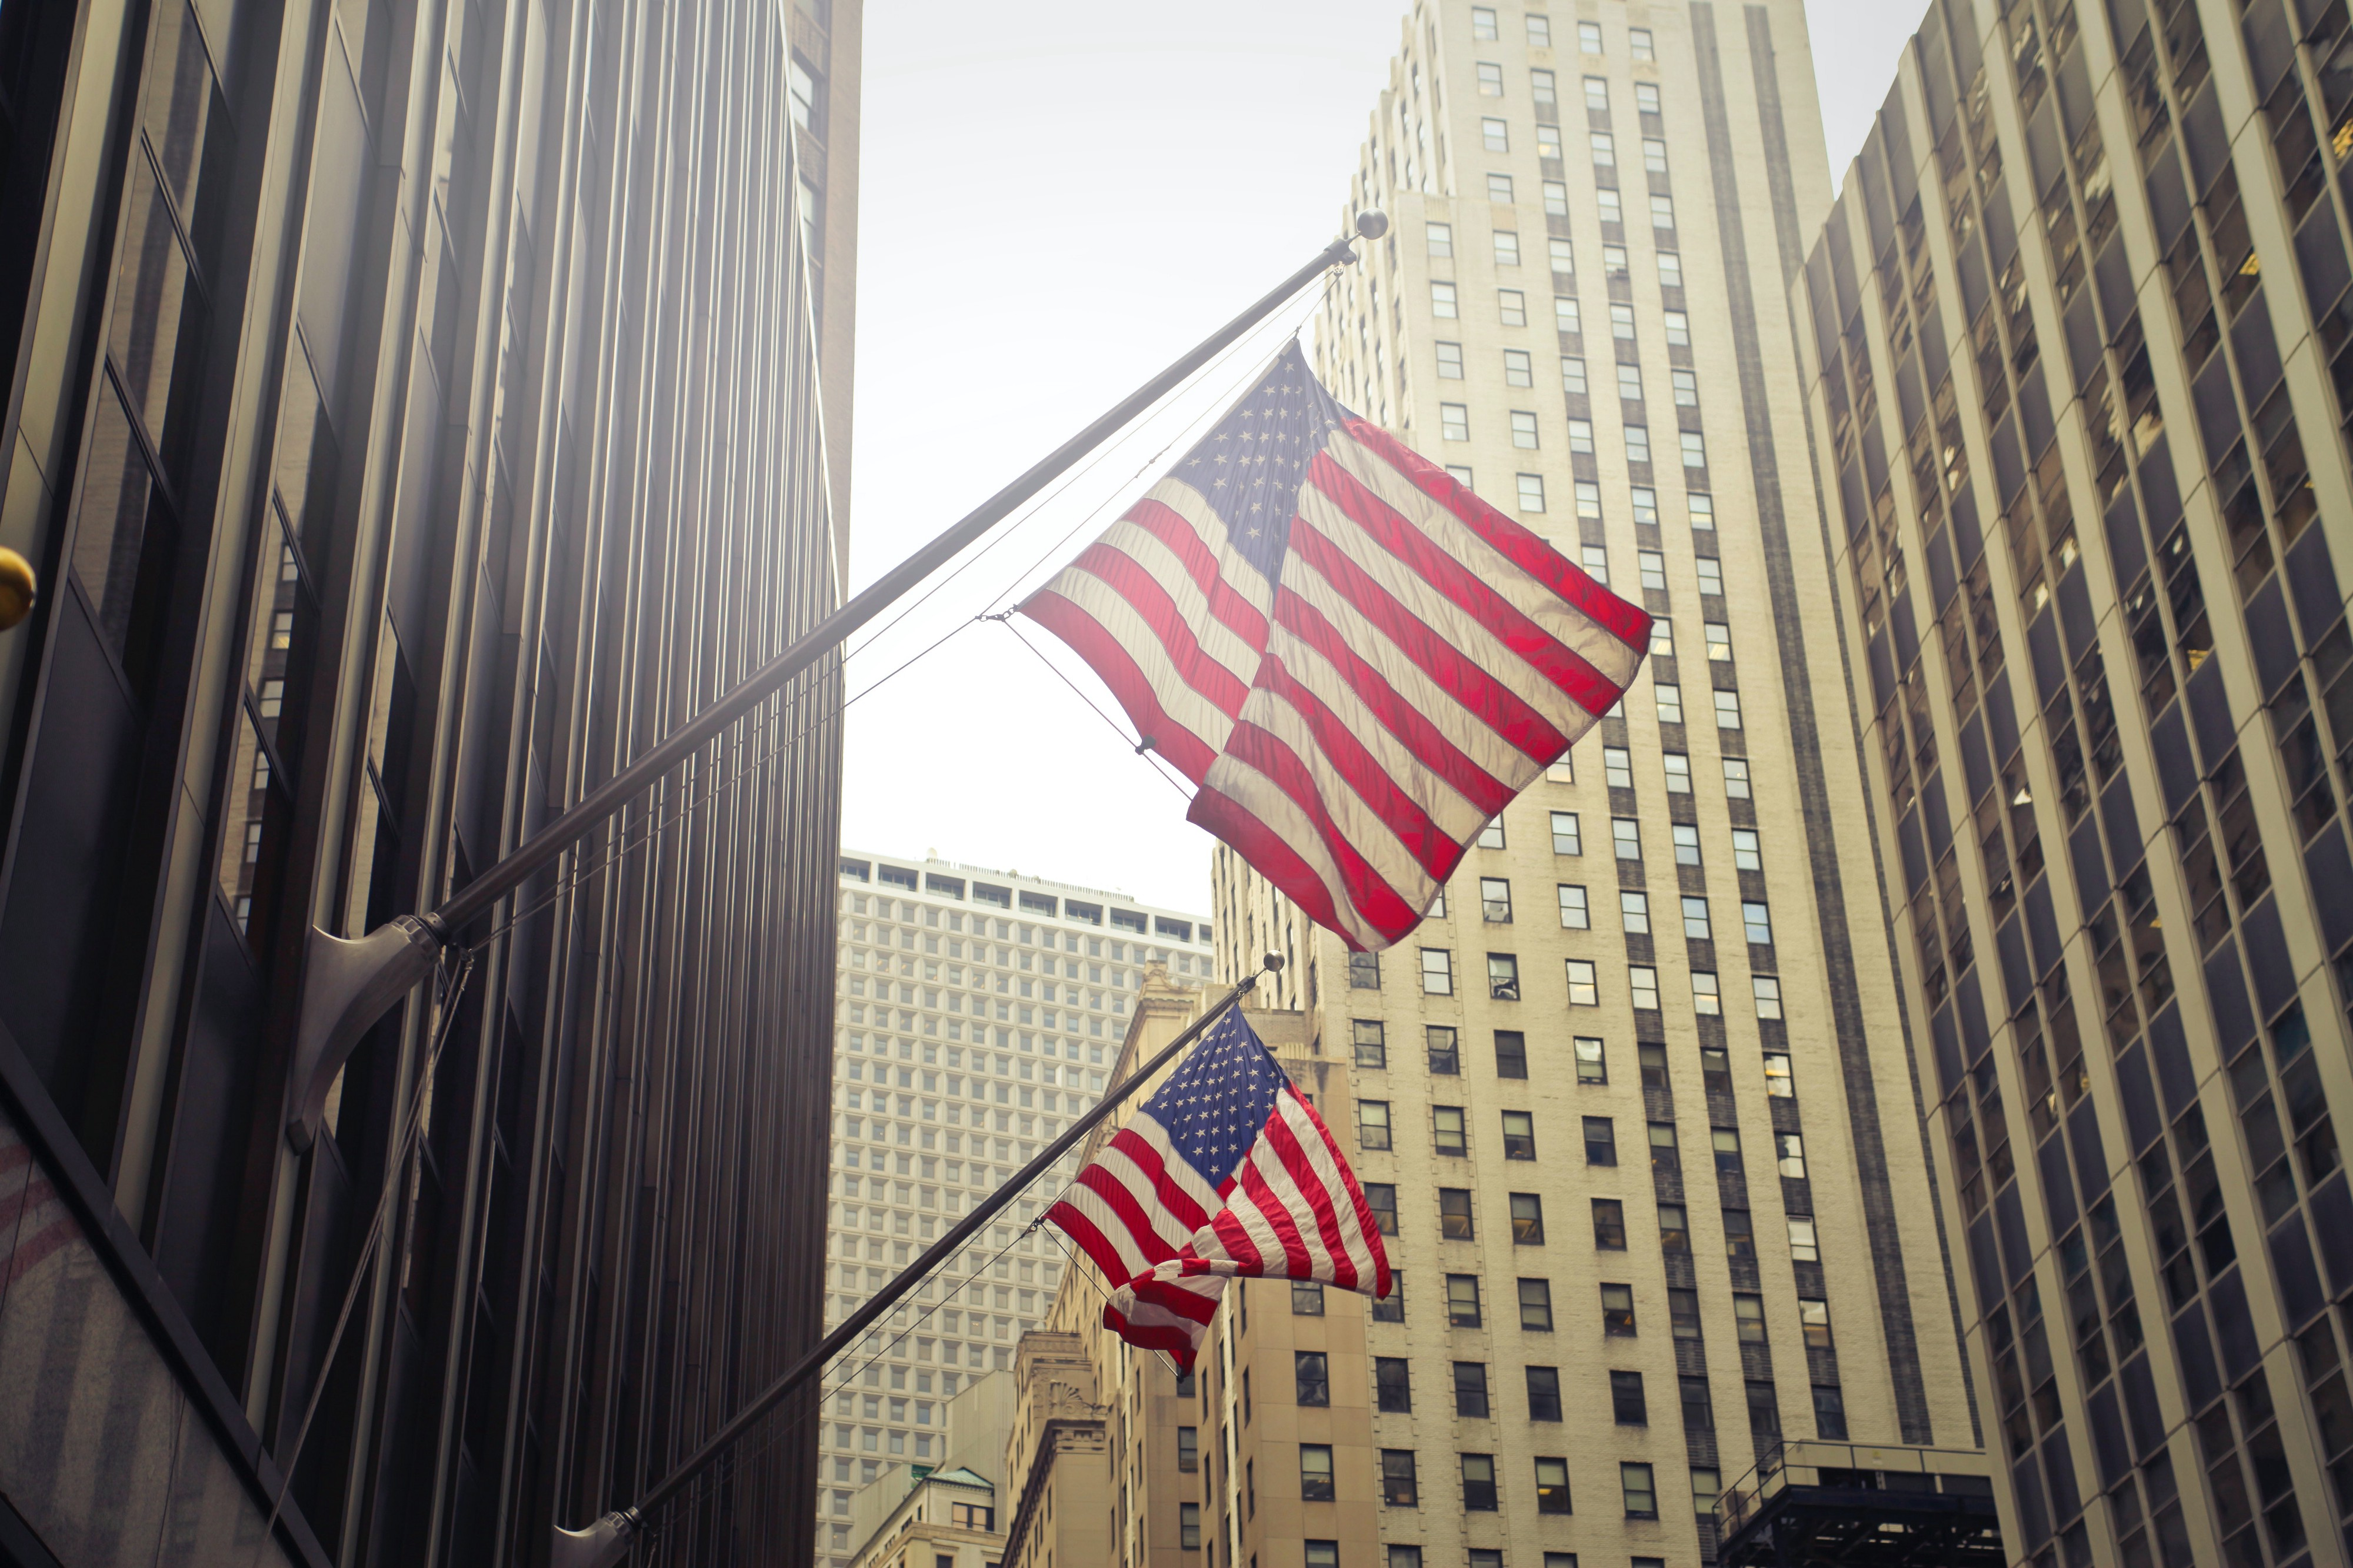 Two flags hang from poles coming off of large, corporate buildings.